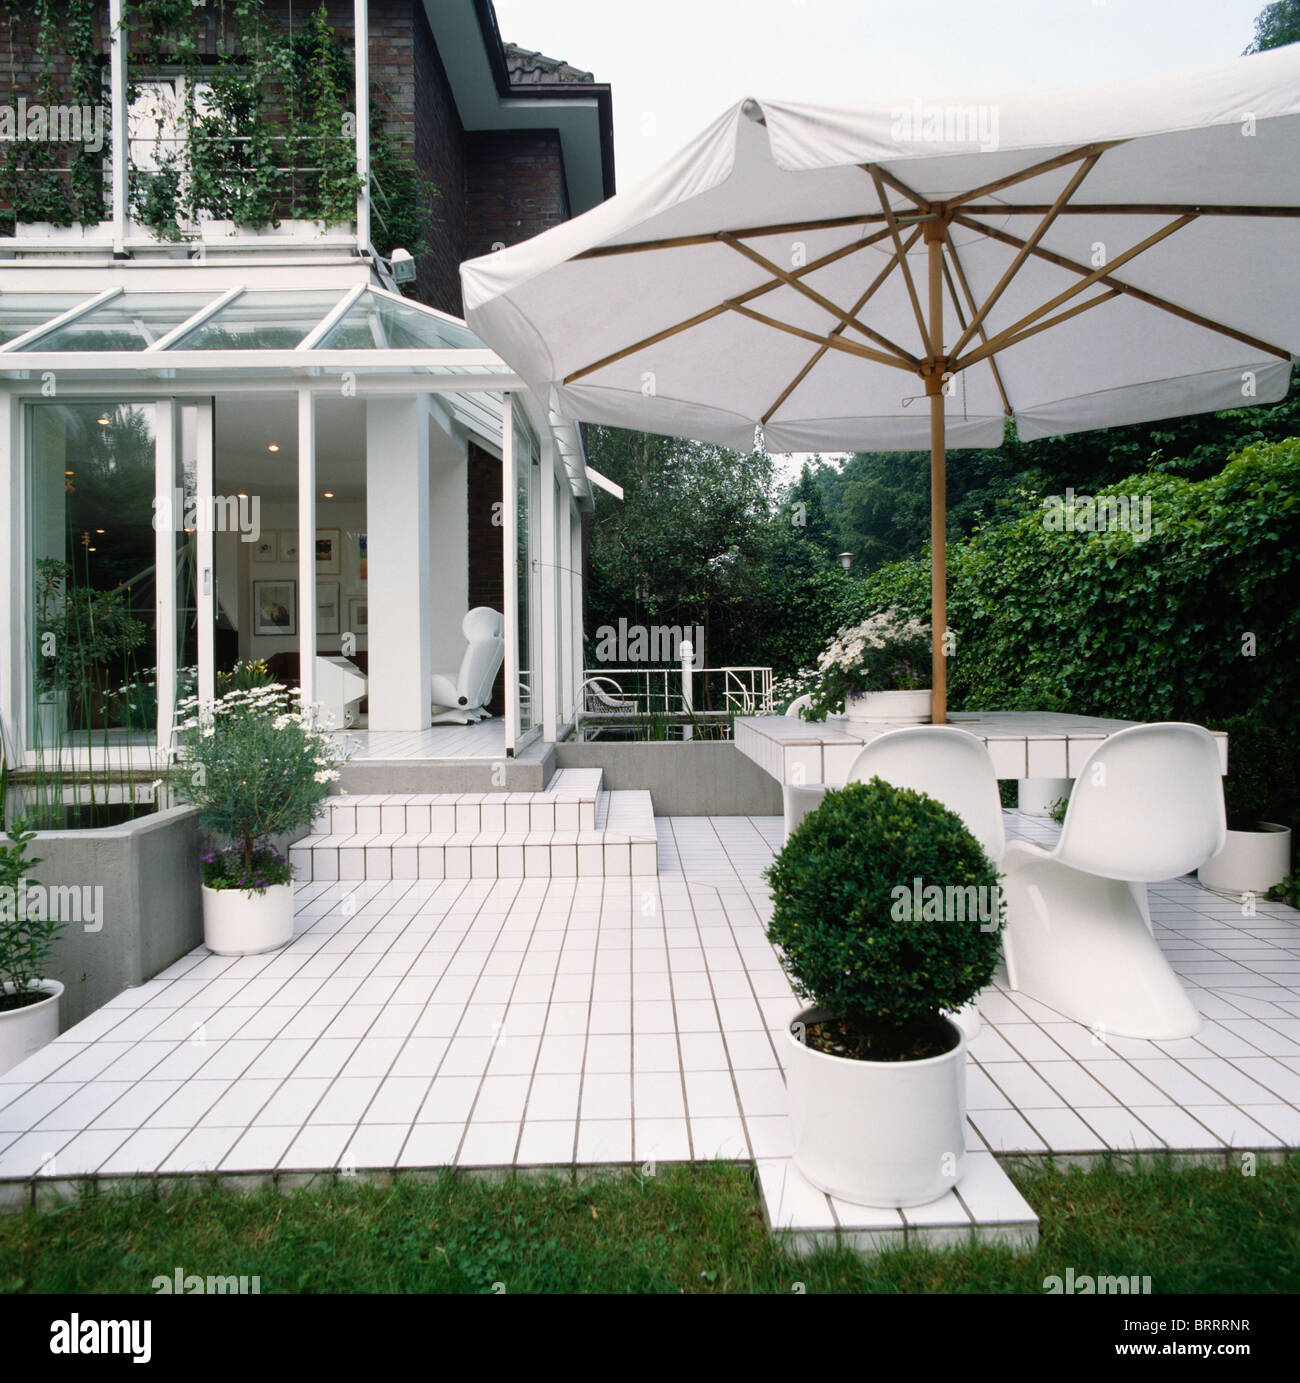 Large White Umbrella Above White Chairs And Table On White Tiled Patio With  Clipped Box In